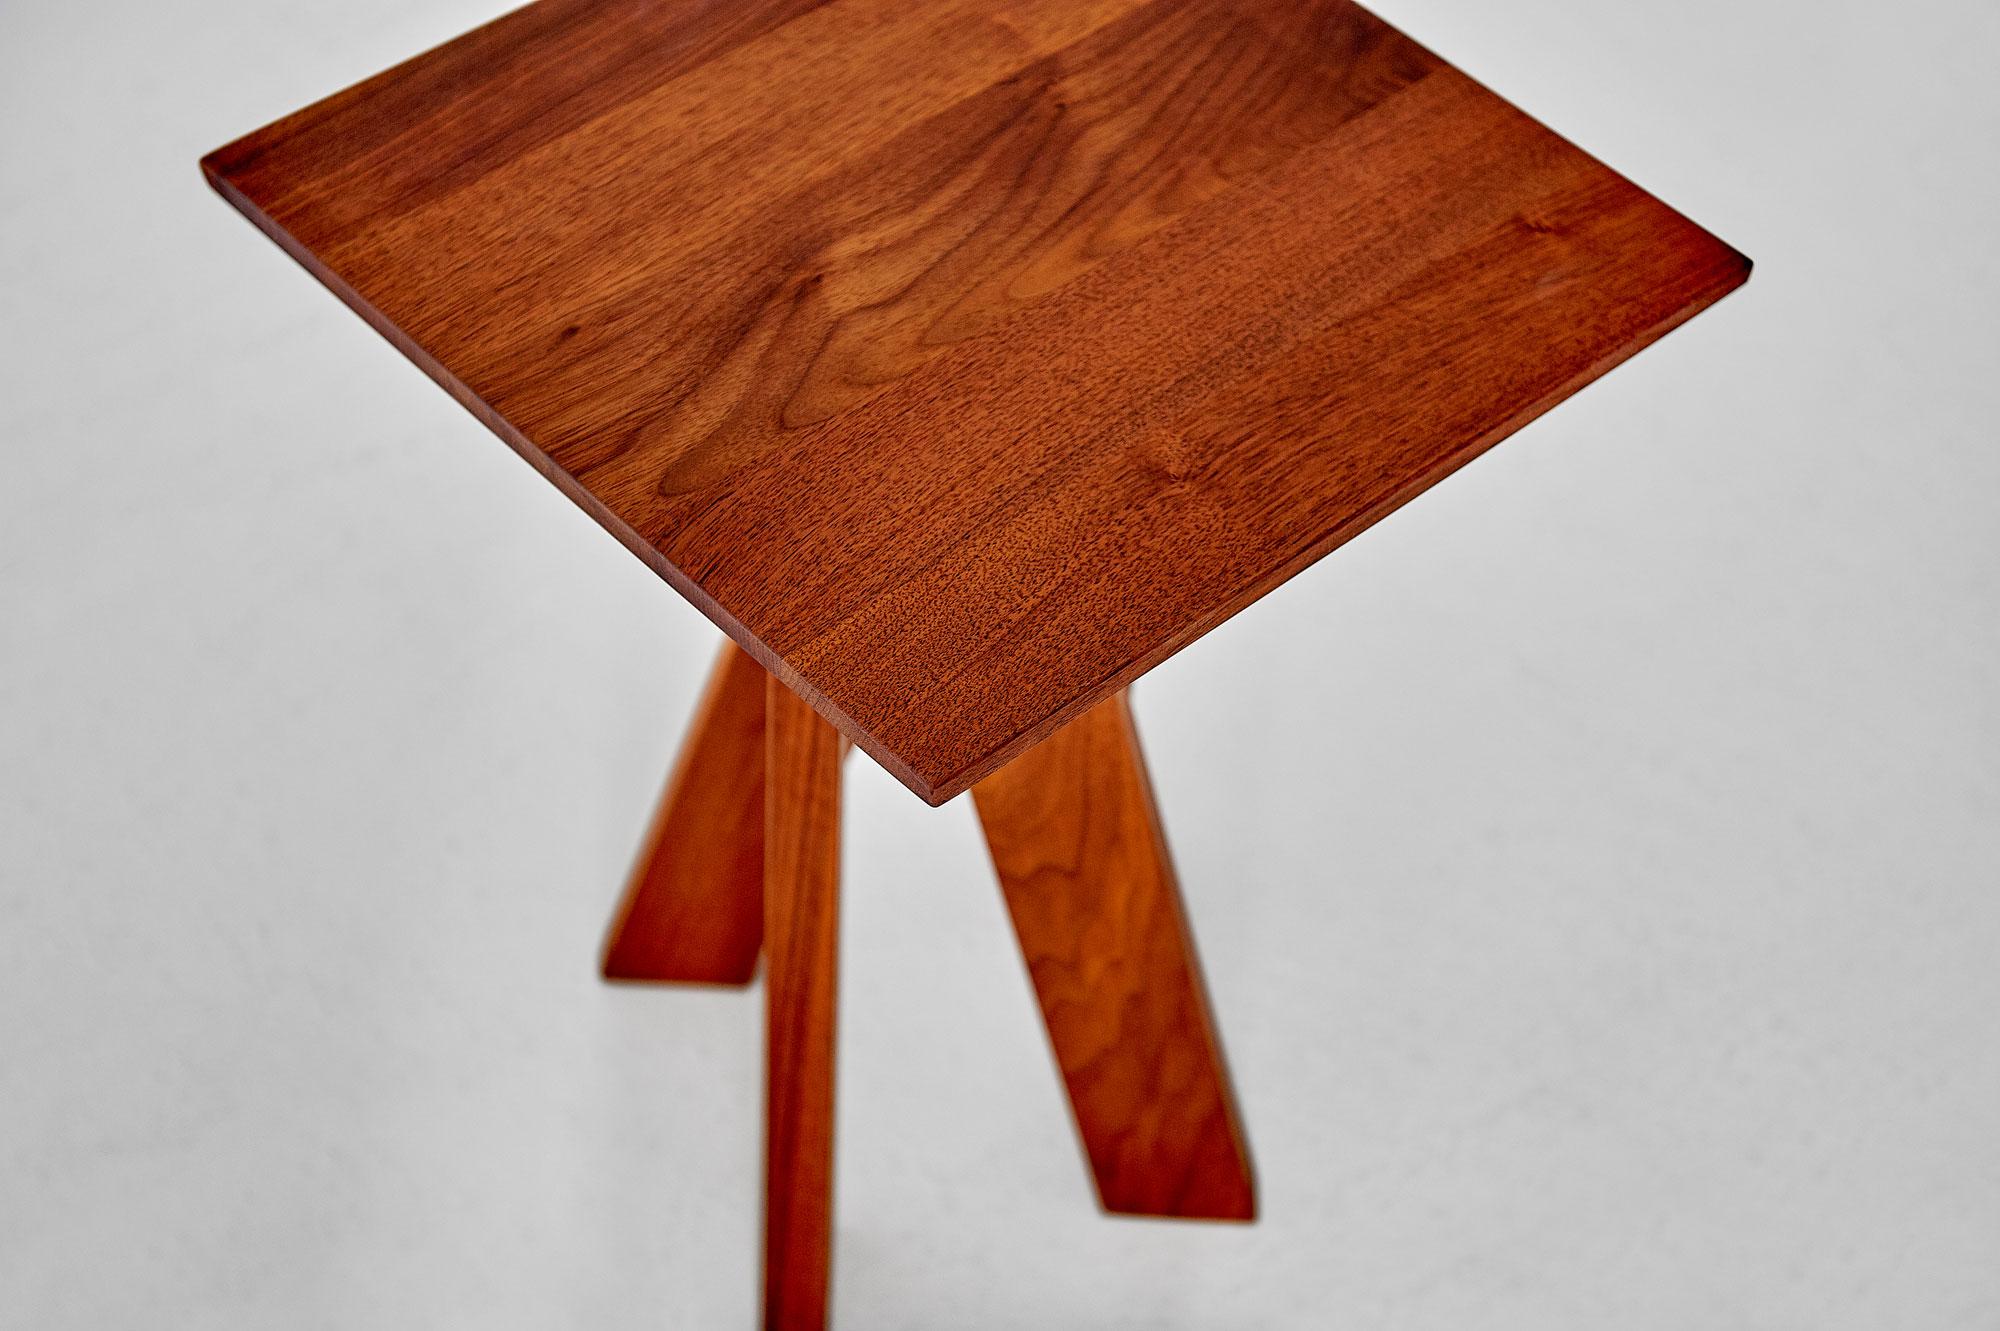 Designer Coffee Table ZIRKEL QG Edited custom made in solid wood by vitamin design